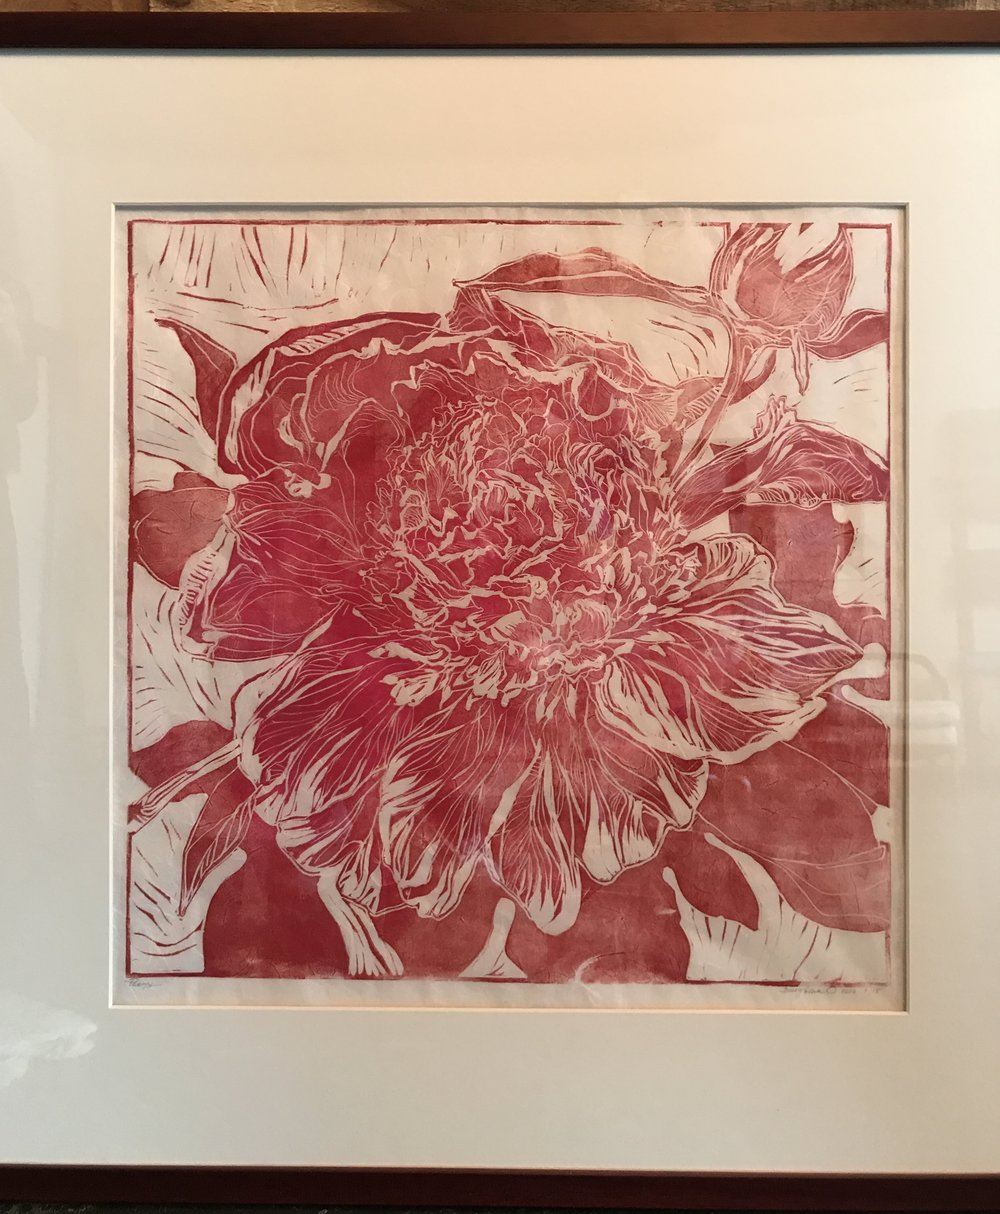 "Item #146    Elina Burykina    Peony   Hand Pulled Print on Unryu Paper, 18 x 18       Romanova Art – Chattanooga, TN   Opening Bid $525    Minimum Raise $25       Elena Burykina  was born in Ulan-Ude, a city in the Russian Far East, in 1977. Her family later moved to Ukraine where she received professional training in art and architecture. She completed art school in the city of Dnipropetrovsk, and received a bachelor's degree and degree in architecture from the Prydniprovska State Academy of Civil Engineering and Architecture in 2000. Elena's undergraduate and graduate training in architecture included classical training in drawing and painting. After a 15-year career as an architect, she turned her full attention to painting in 2012.     ""My thoughts and emotions come to life on the canvas as realistic images and abstract forms, and style of work depends on the theme, genre, and emotional presence. ""  Elena's works are in Russia, Ukraine, Germany, Spain, Serbia, and the USA."